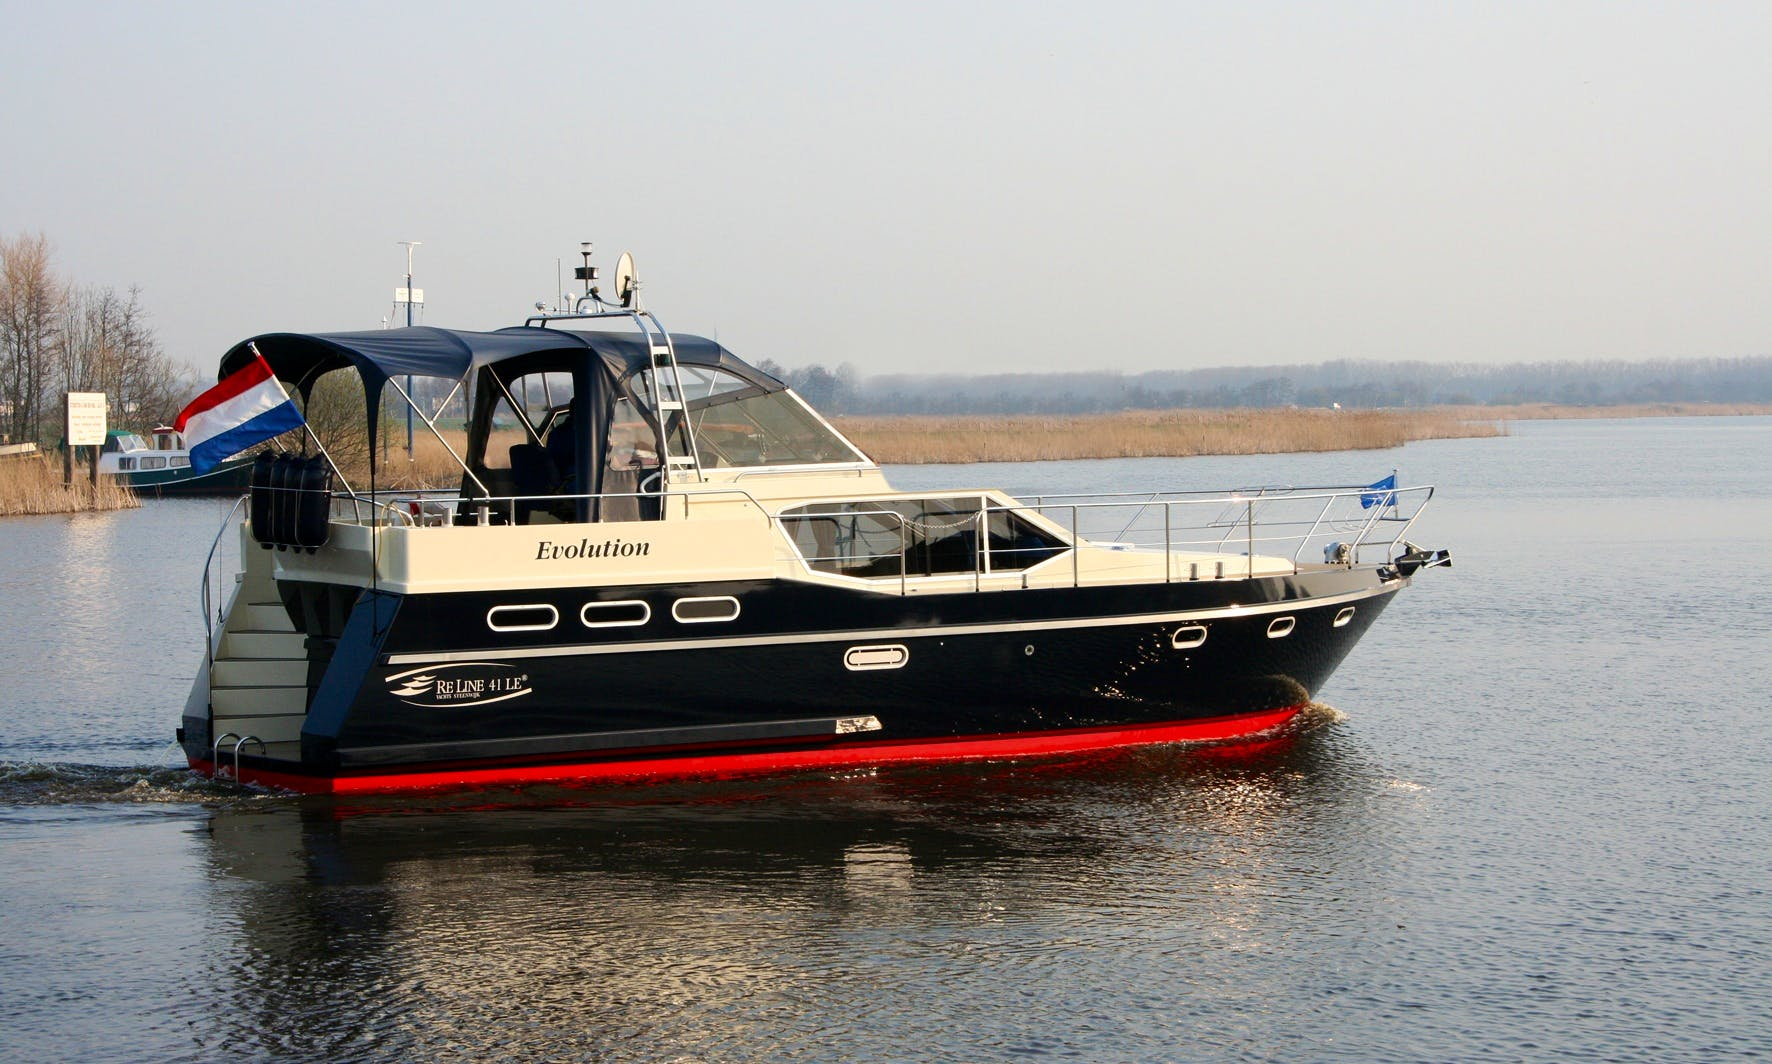 41' ReLine 1260 Limited Ed. Motor Yacht Rental in Drachten - Friesland, Netherlands